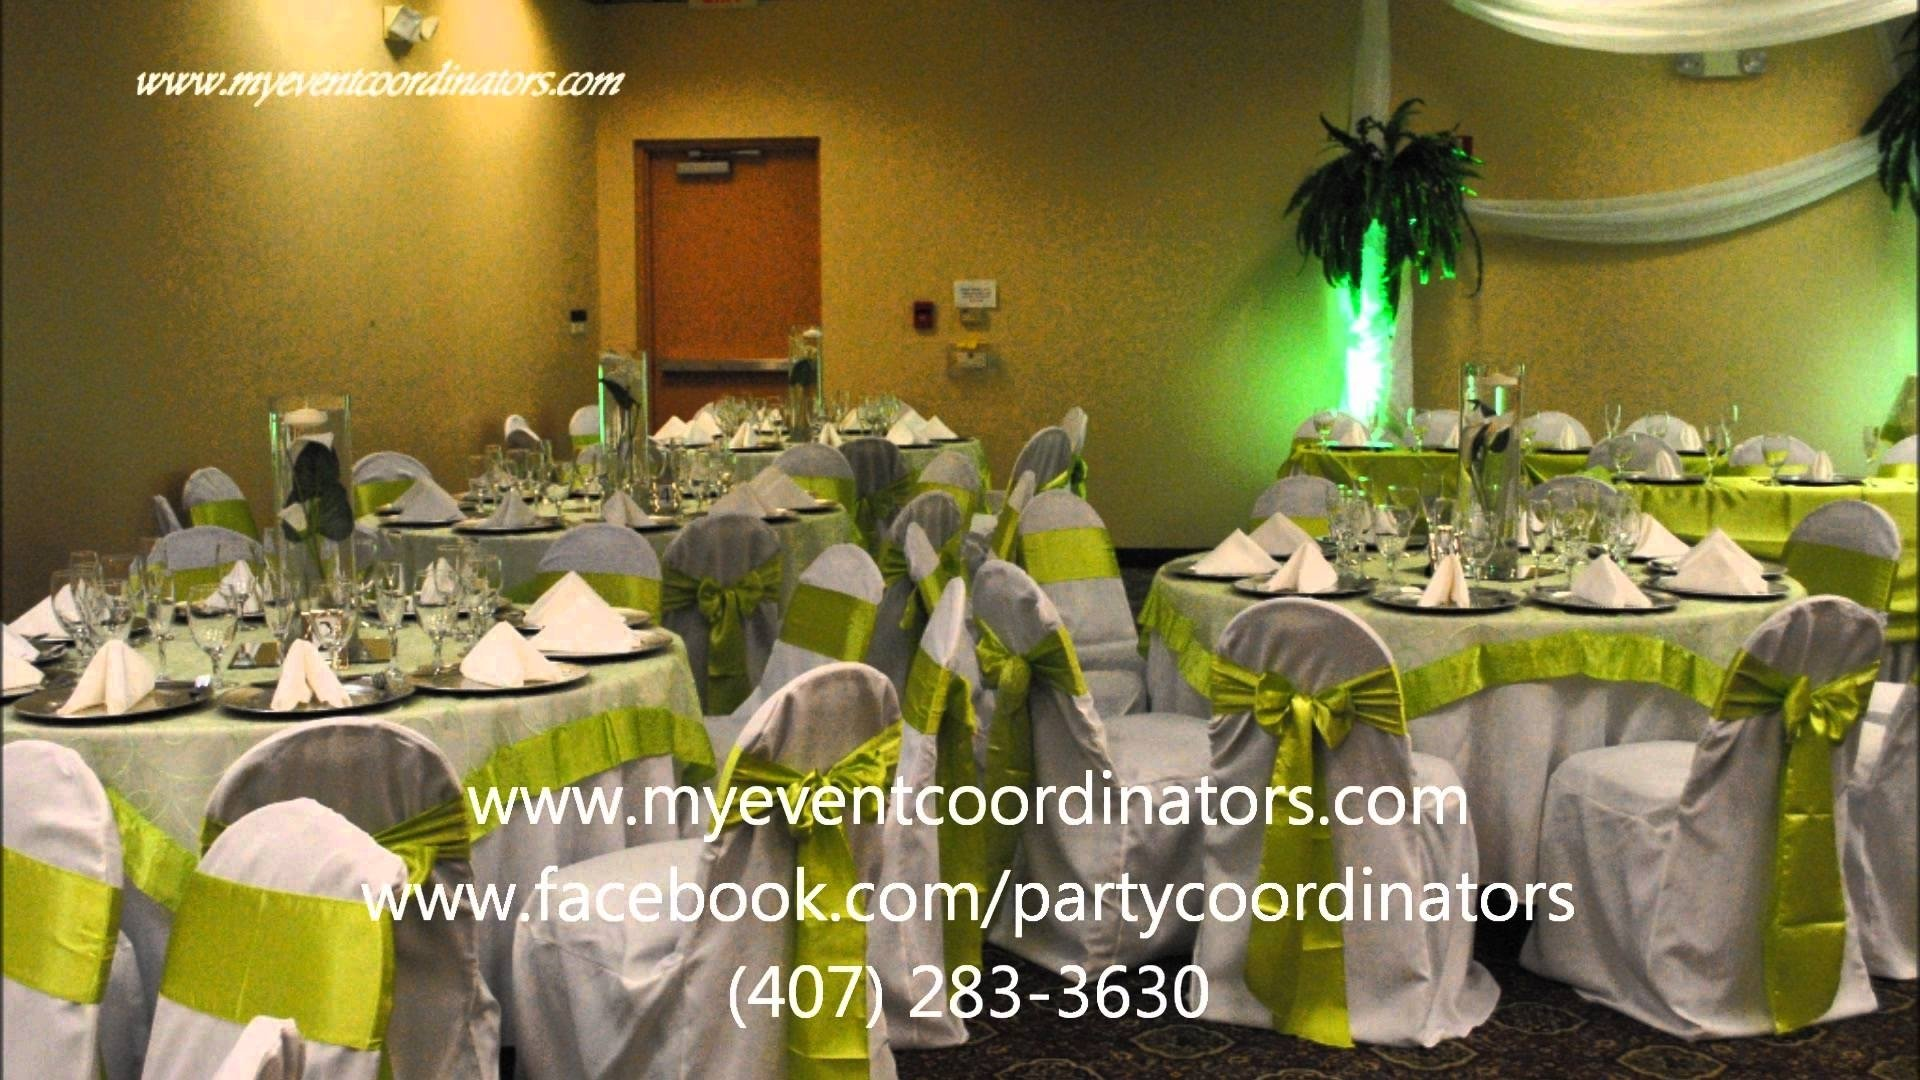 10 Gorgeous 25Th Wedding Anniversary Party Ideas 30th wedding anniversary decoratedevent coordinators etc youtube 2021